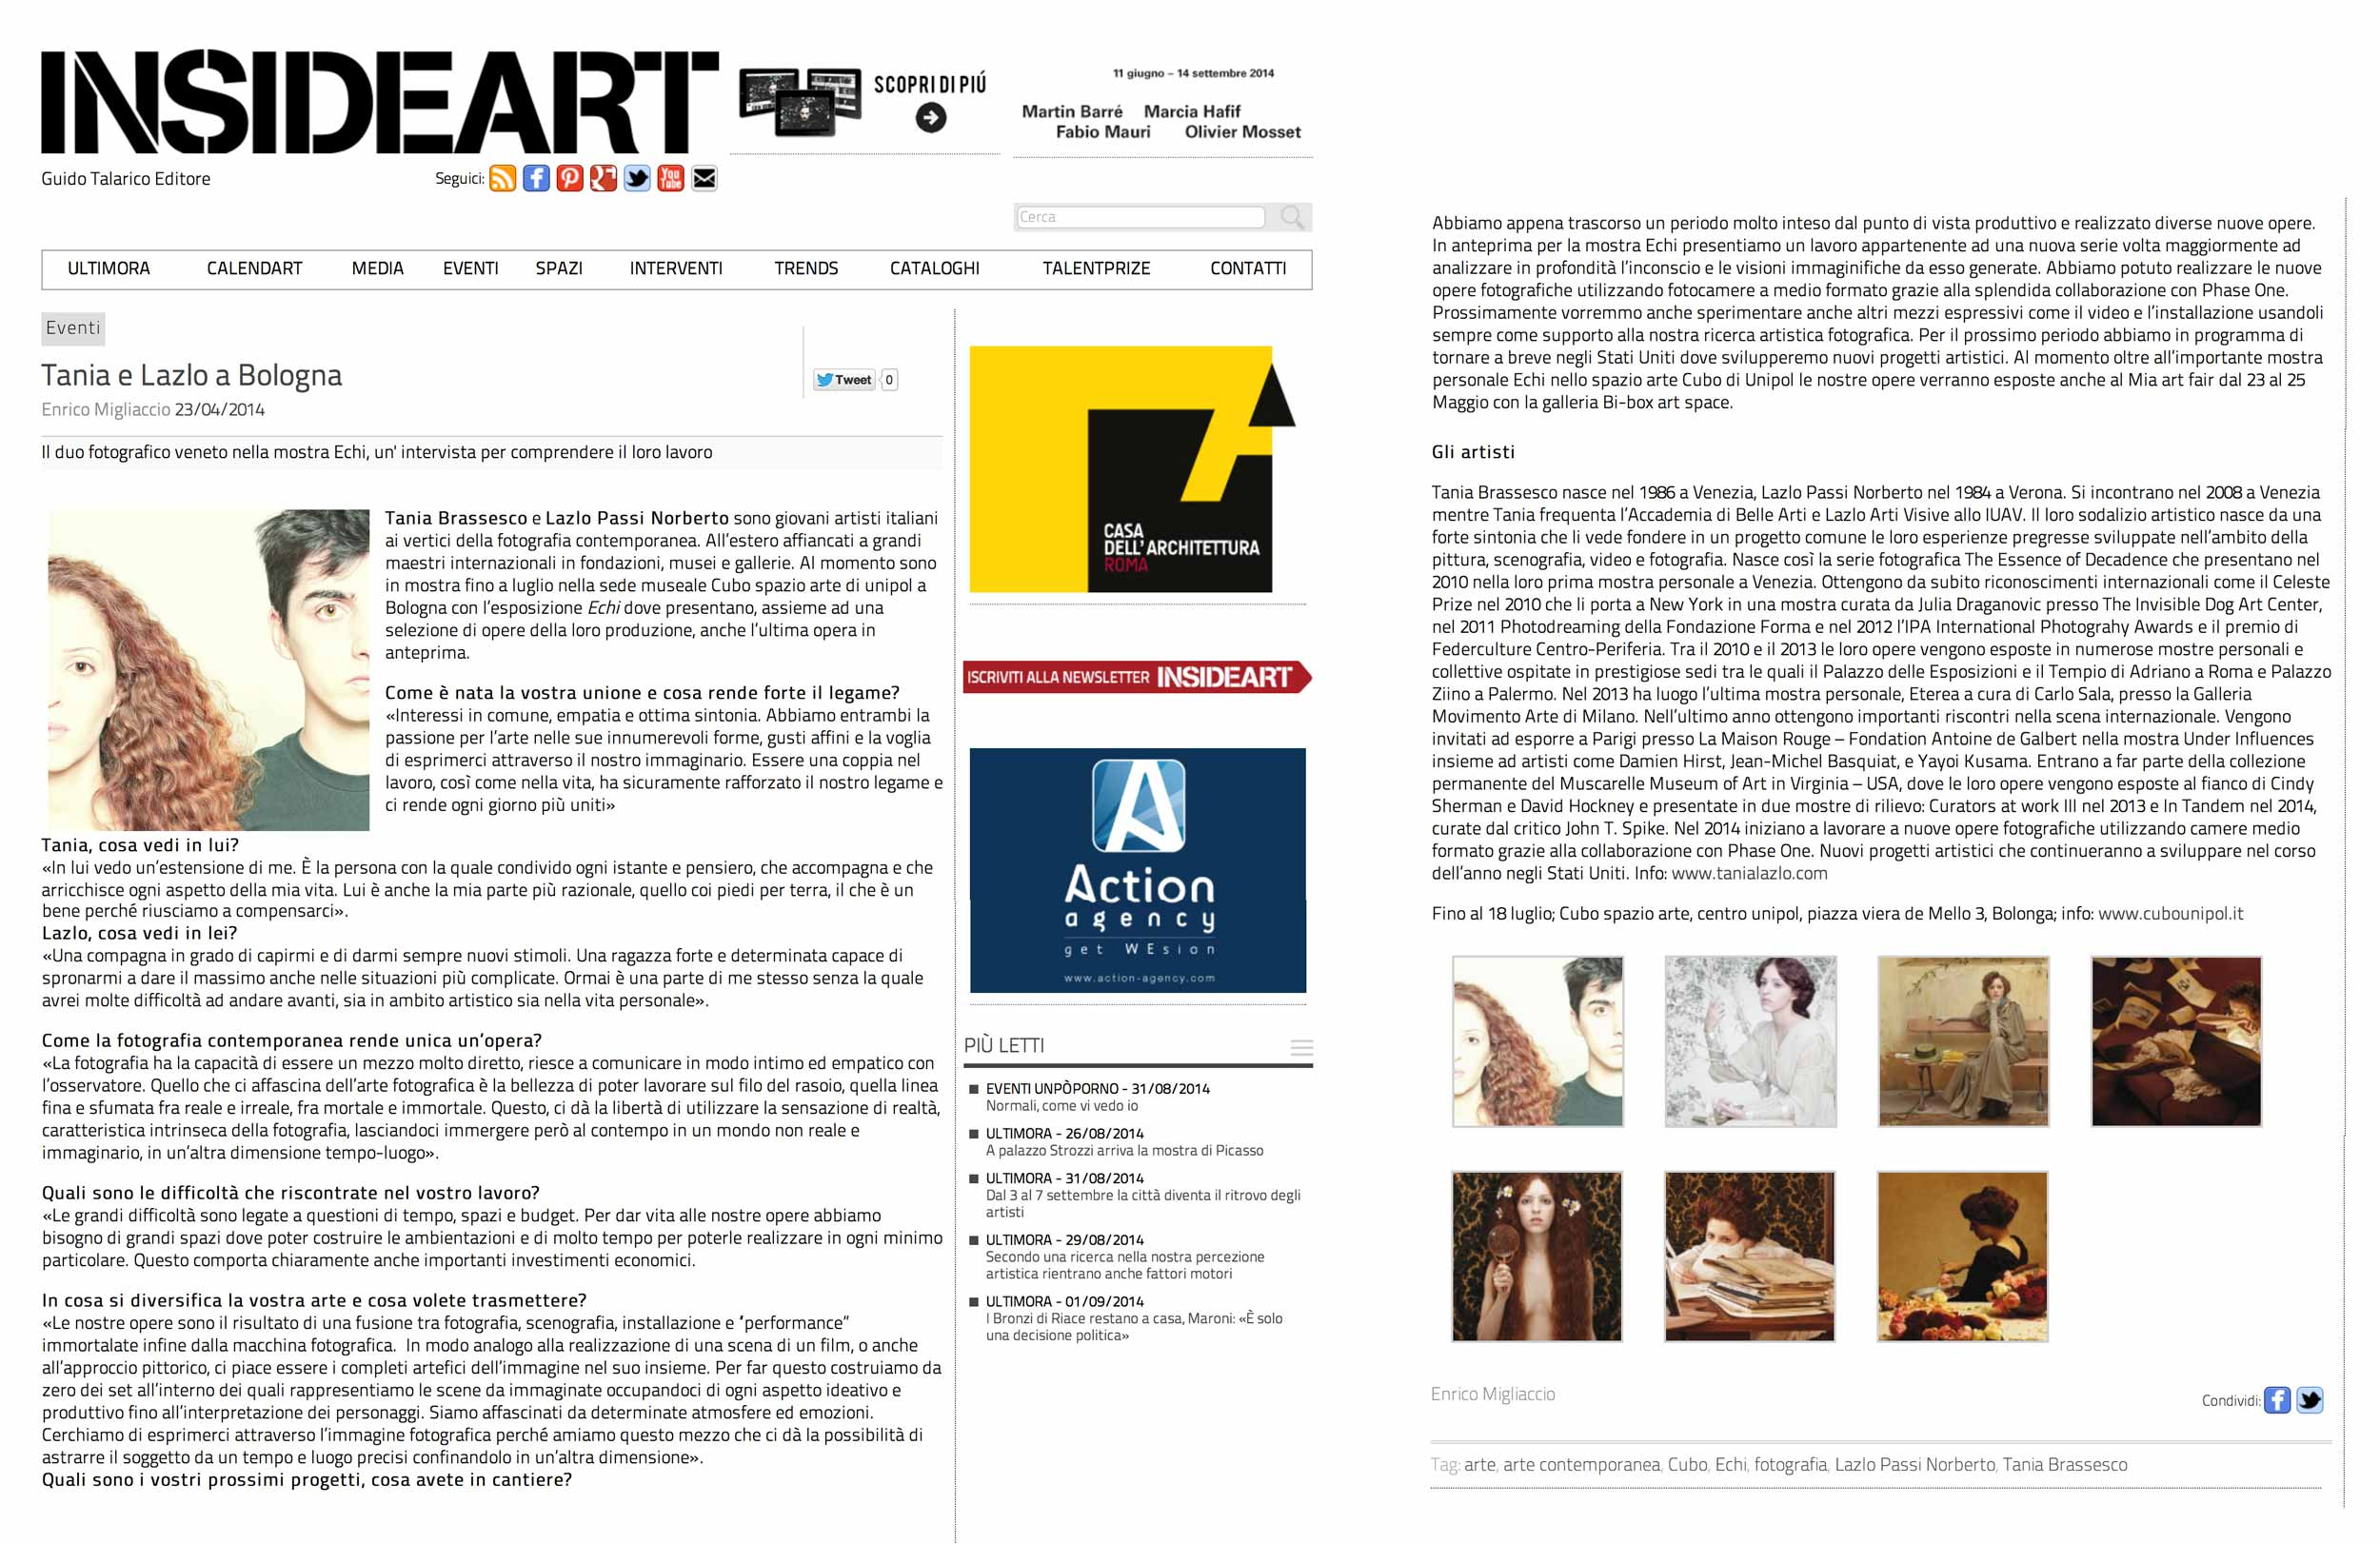 Tania-and-Lazlo-interview-on-Insideart.jpg